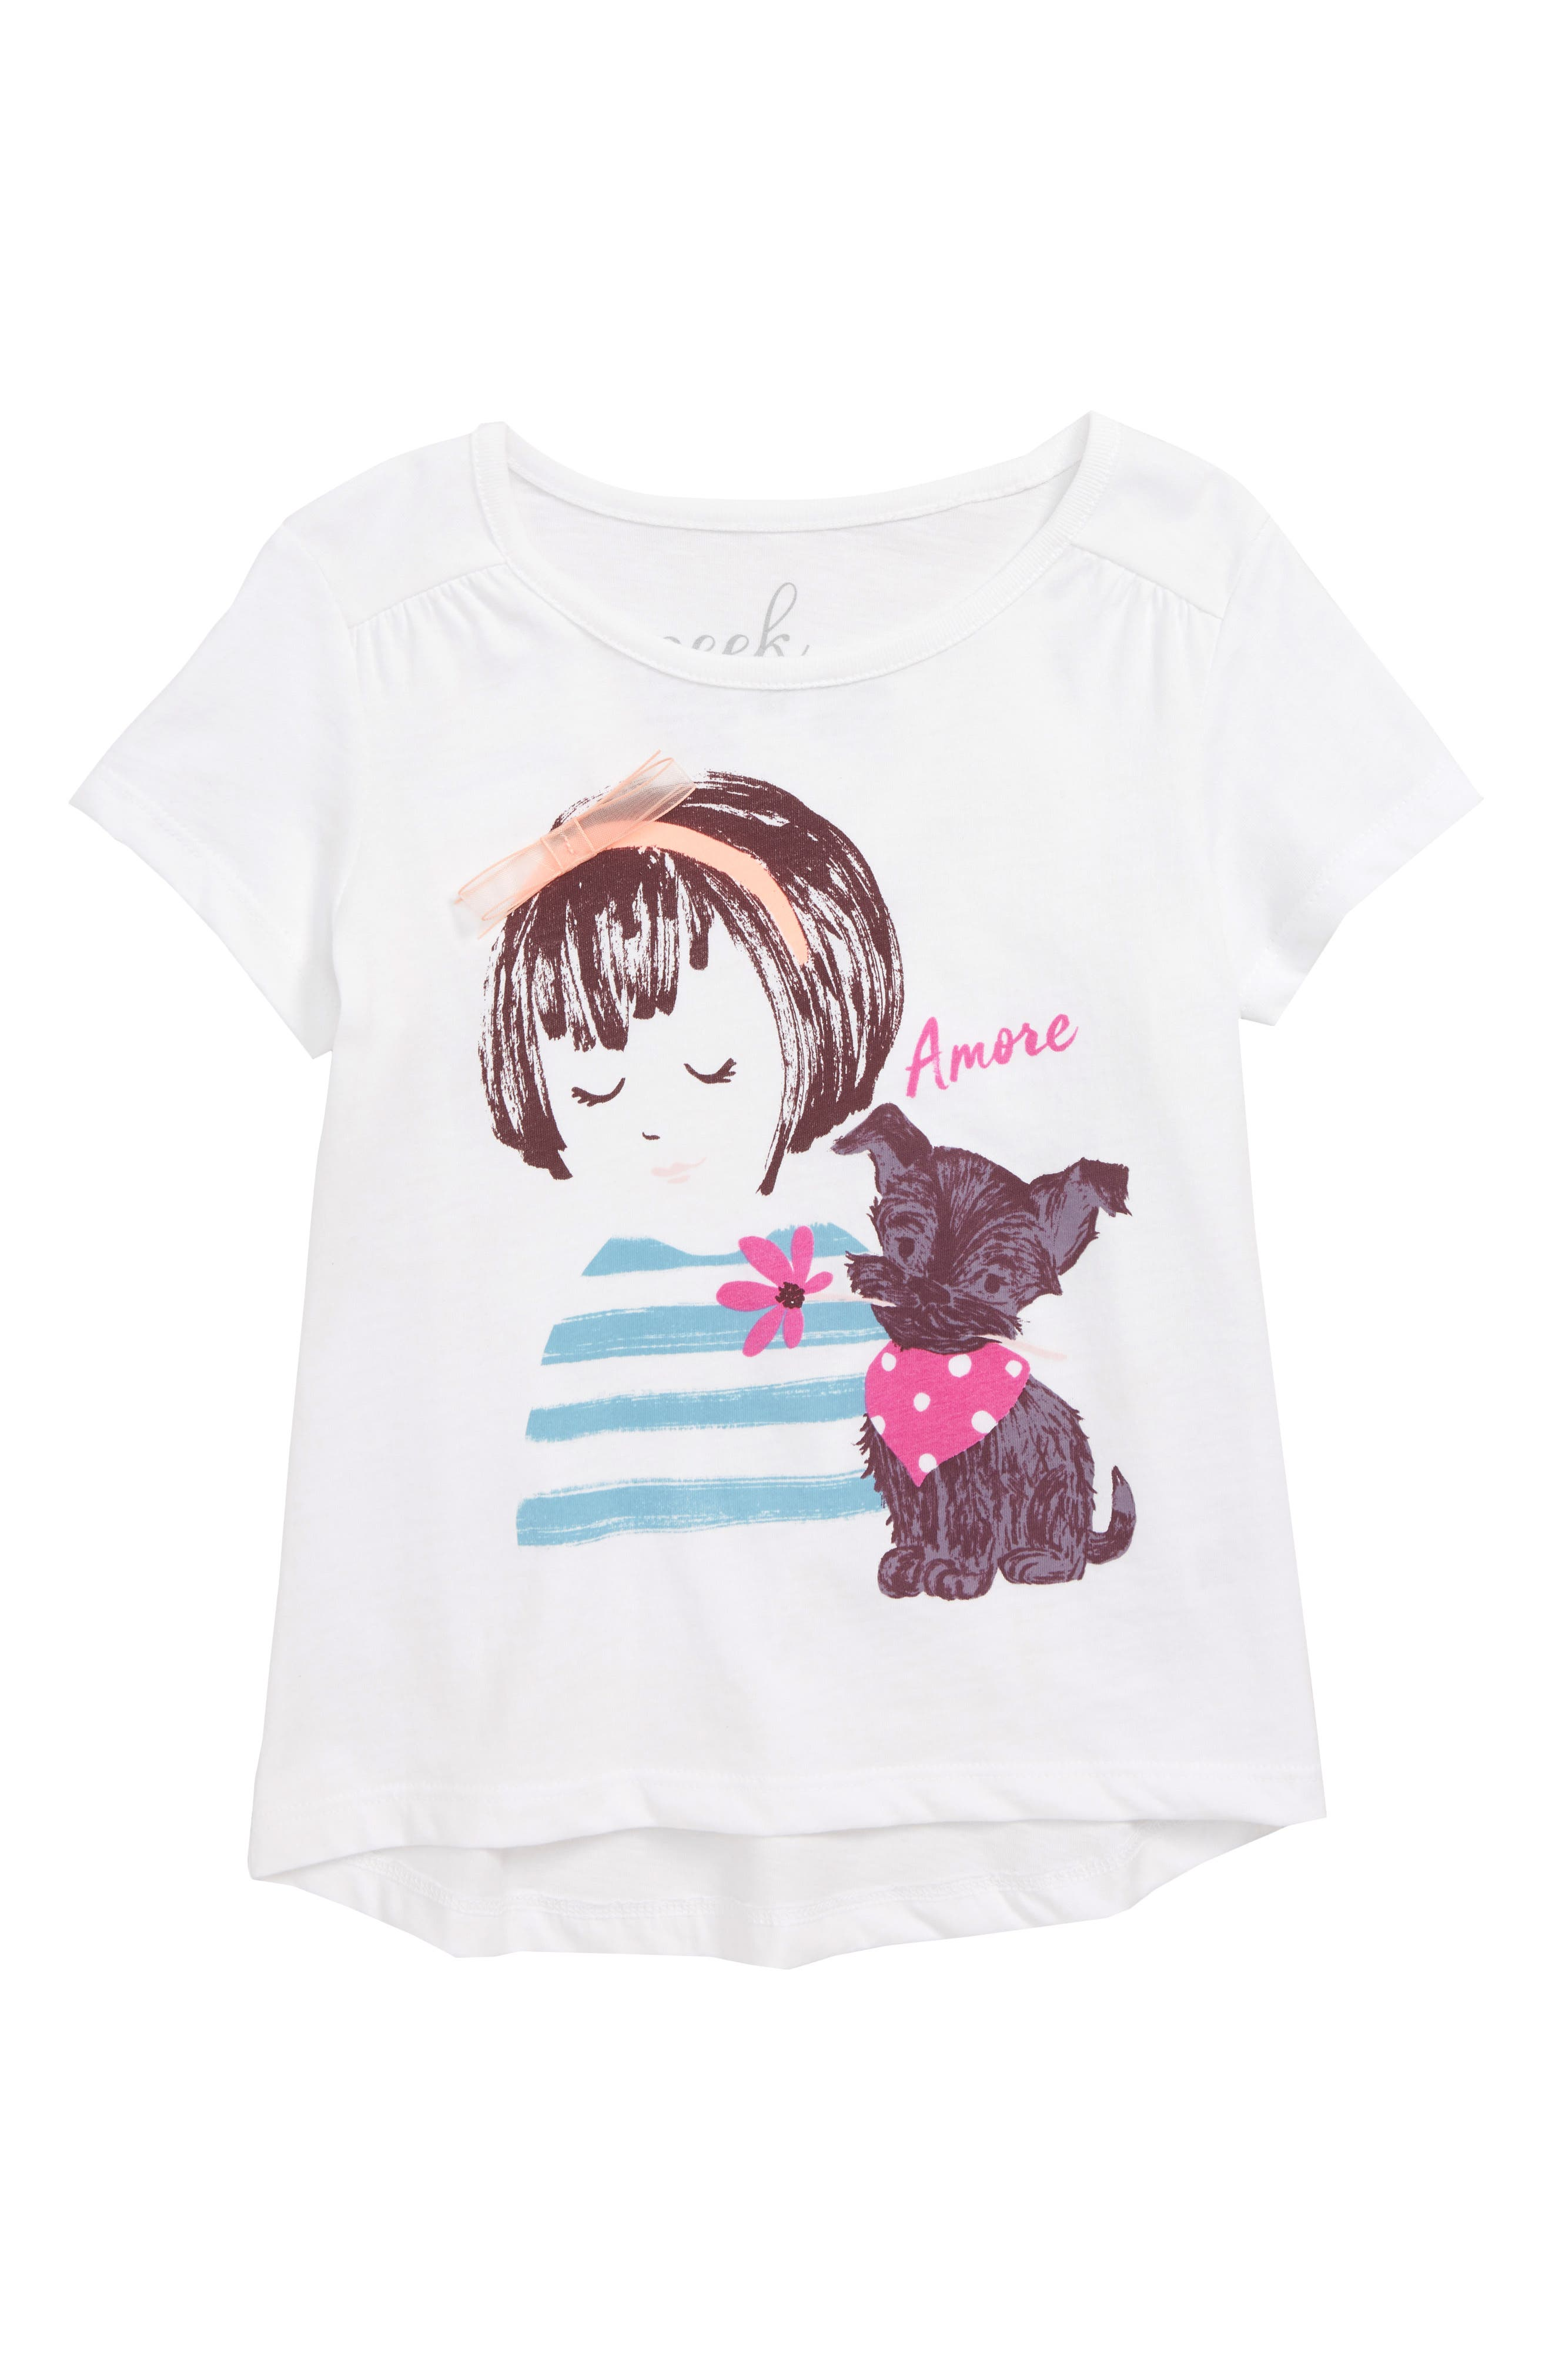 Amore Graphic Tee,                             Main thumbnail 1, color,                             900